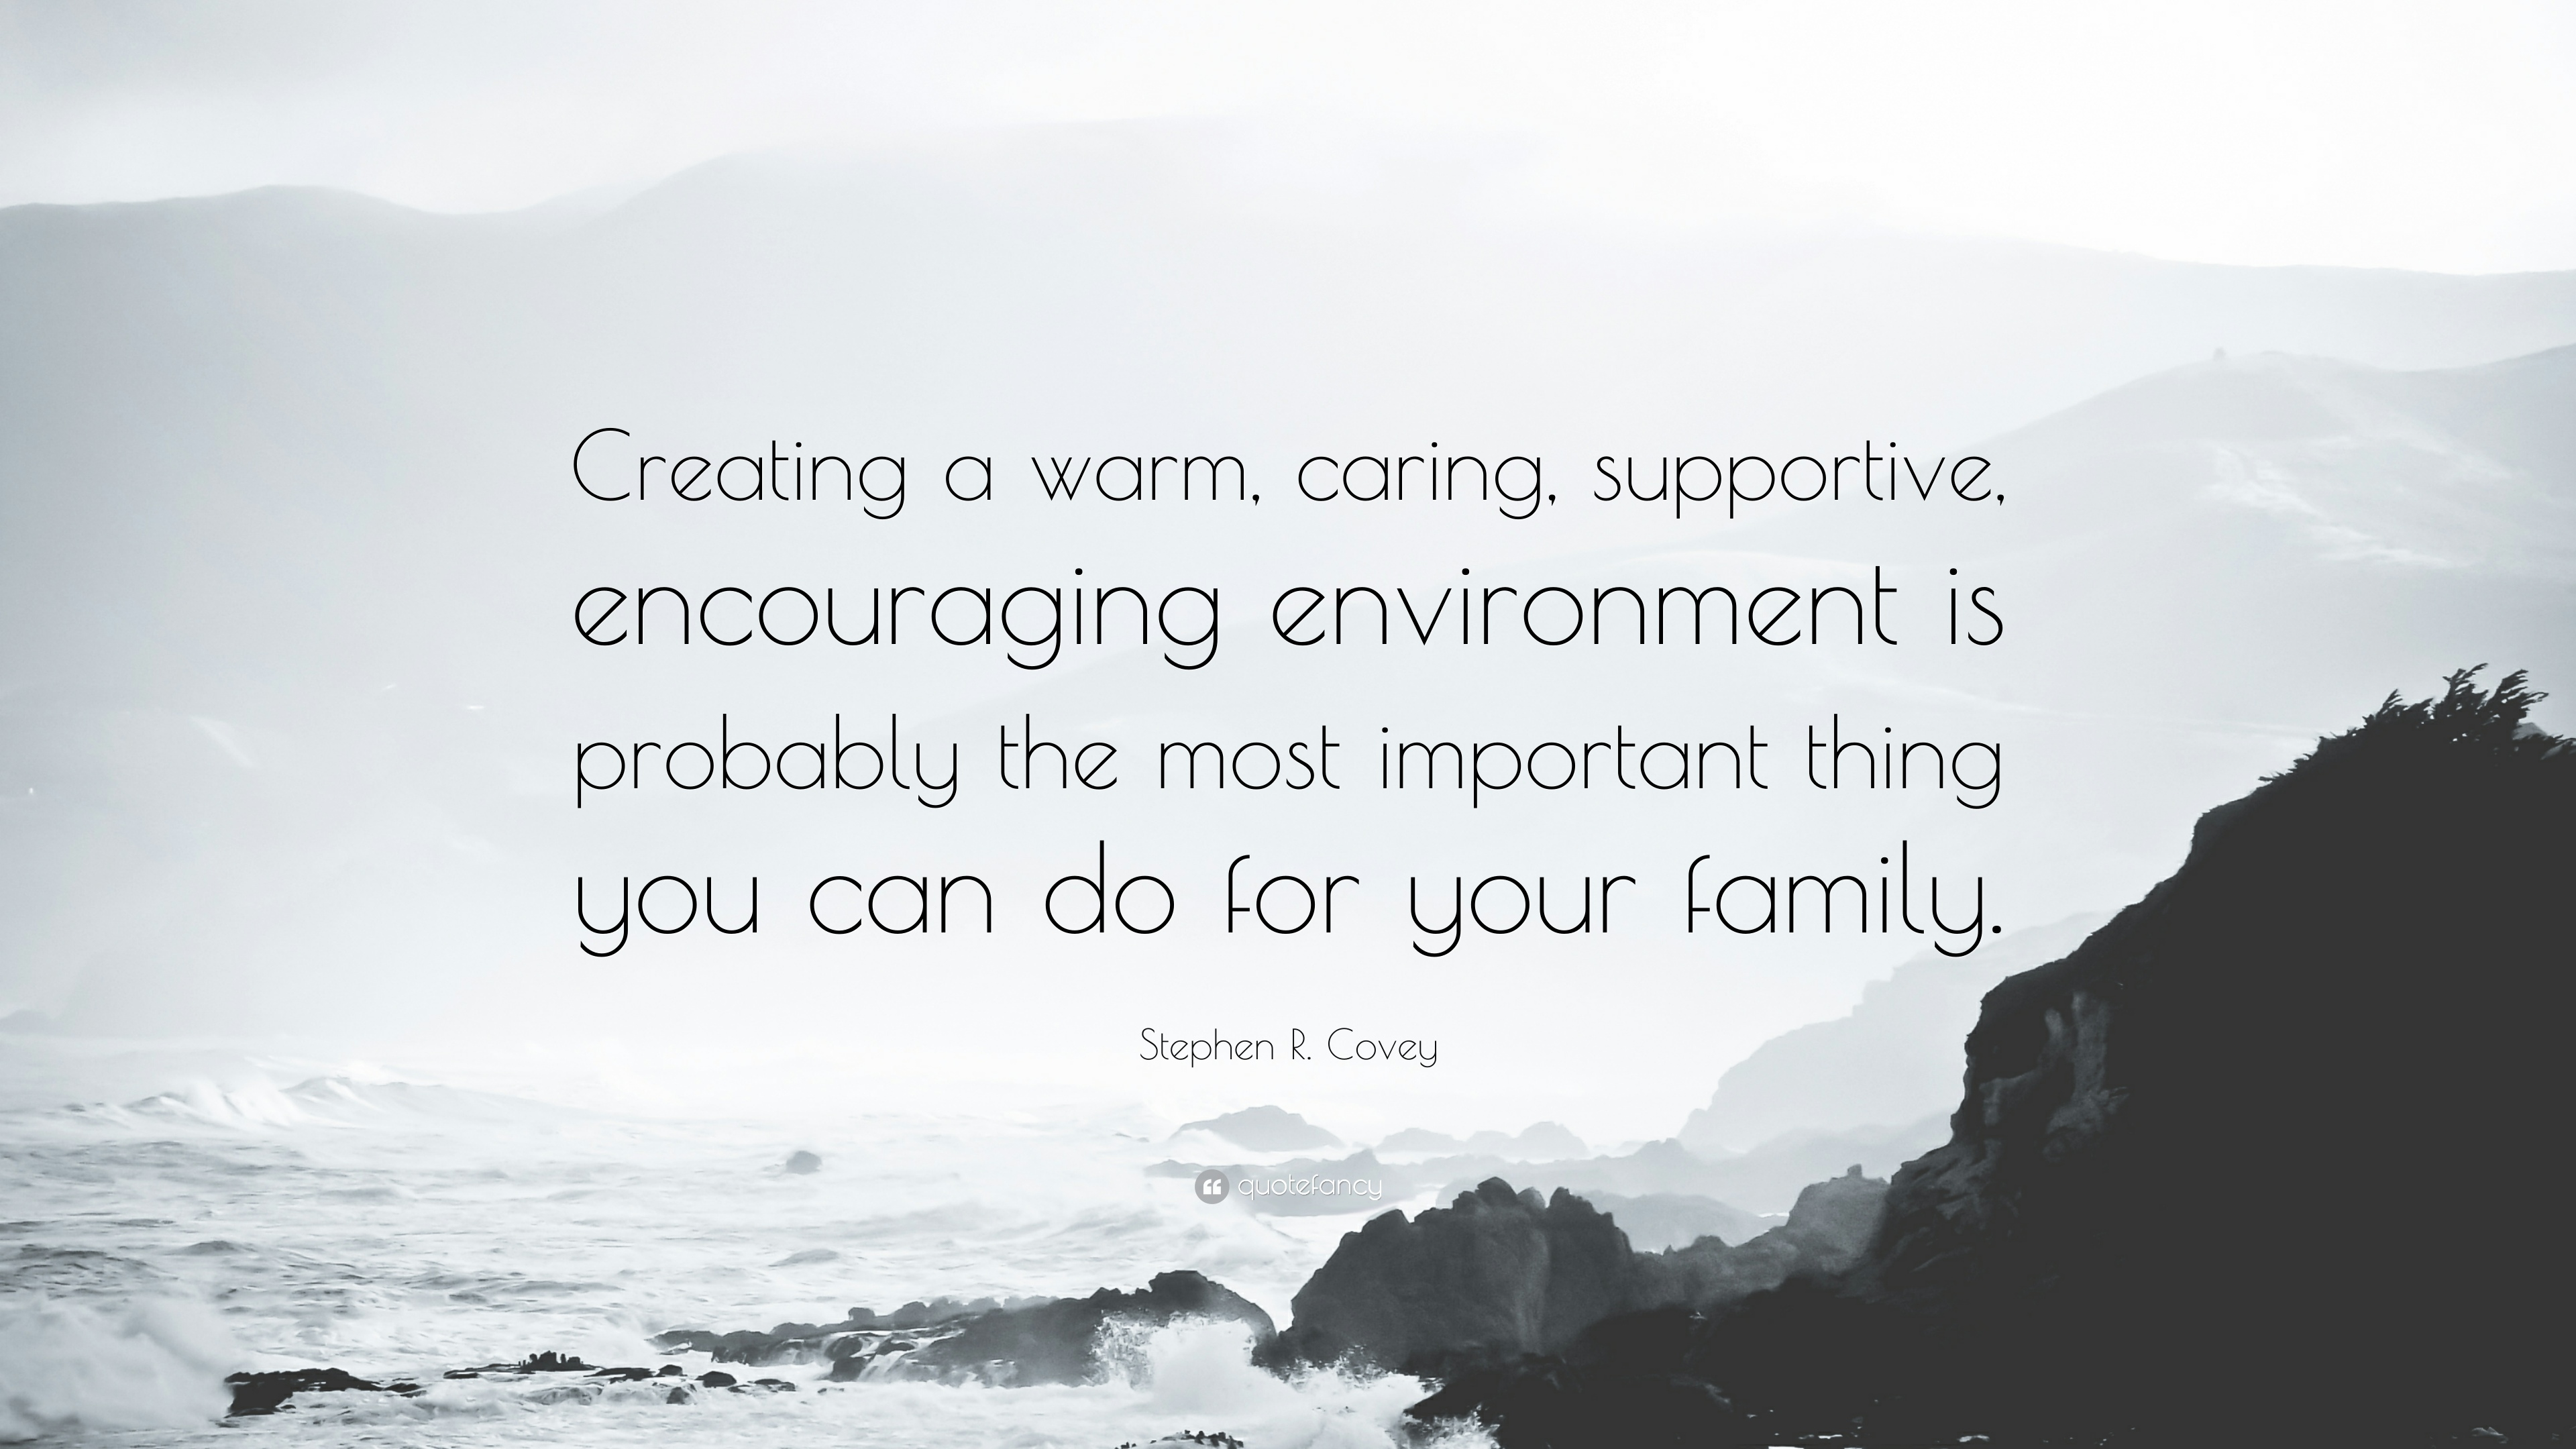 In what ways is your family warm and caring?